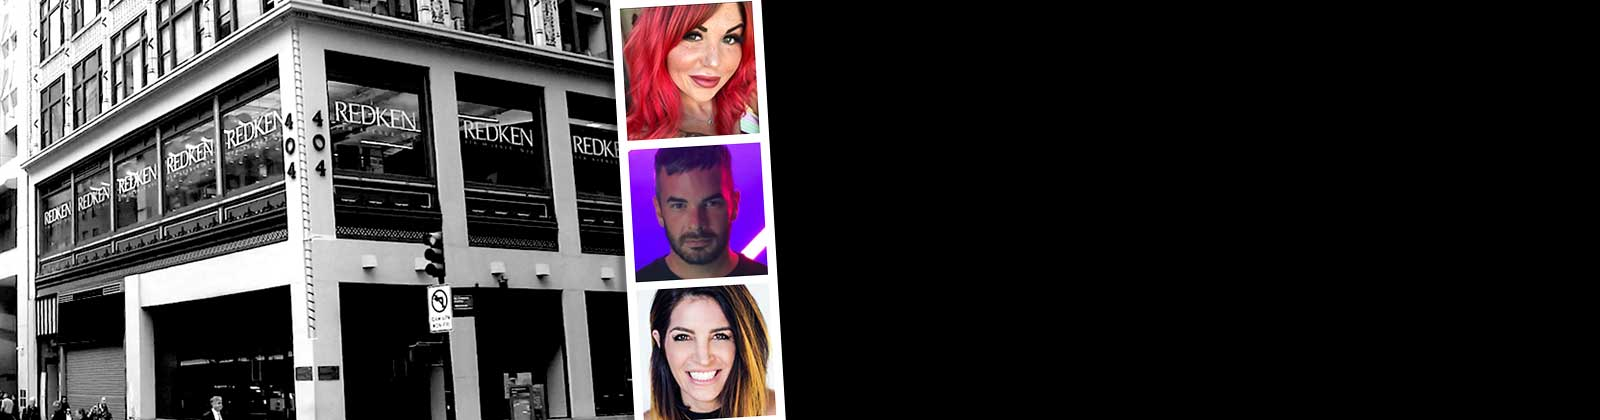 Redken-Homepage-Mobile-Exchange-Rebecca-Taylor